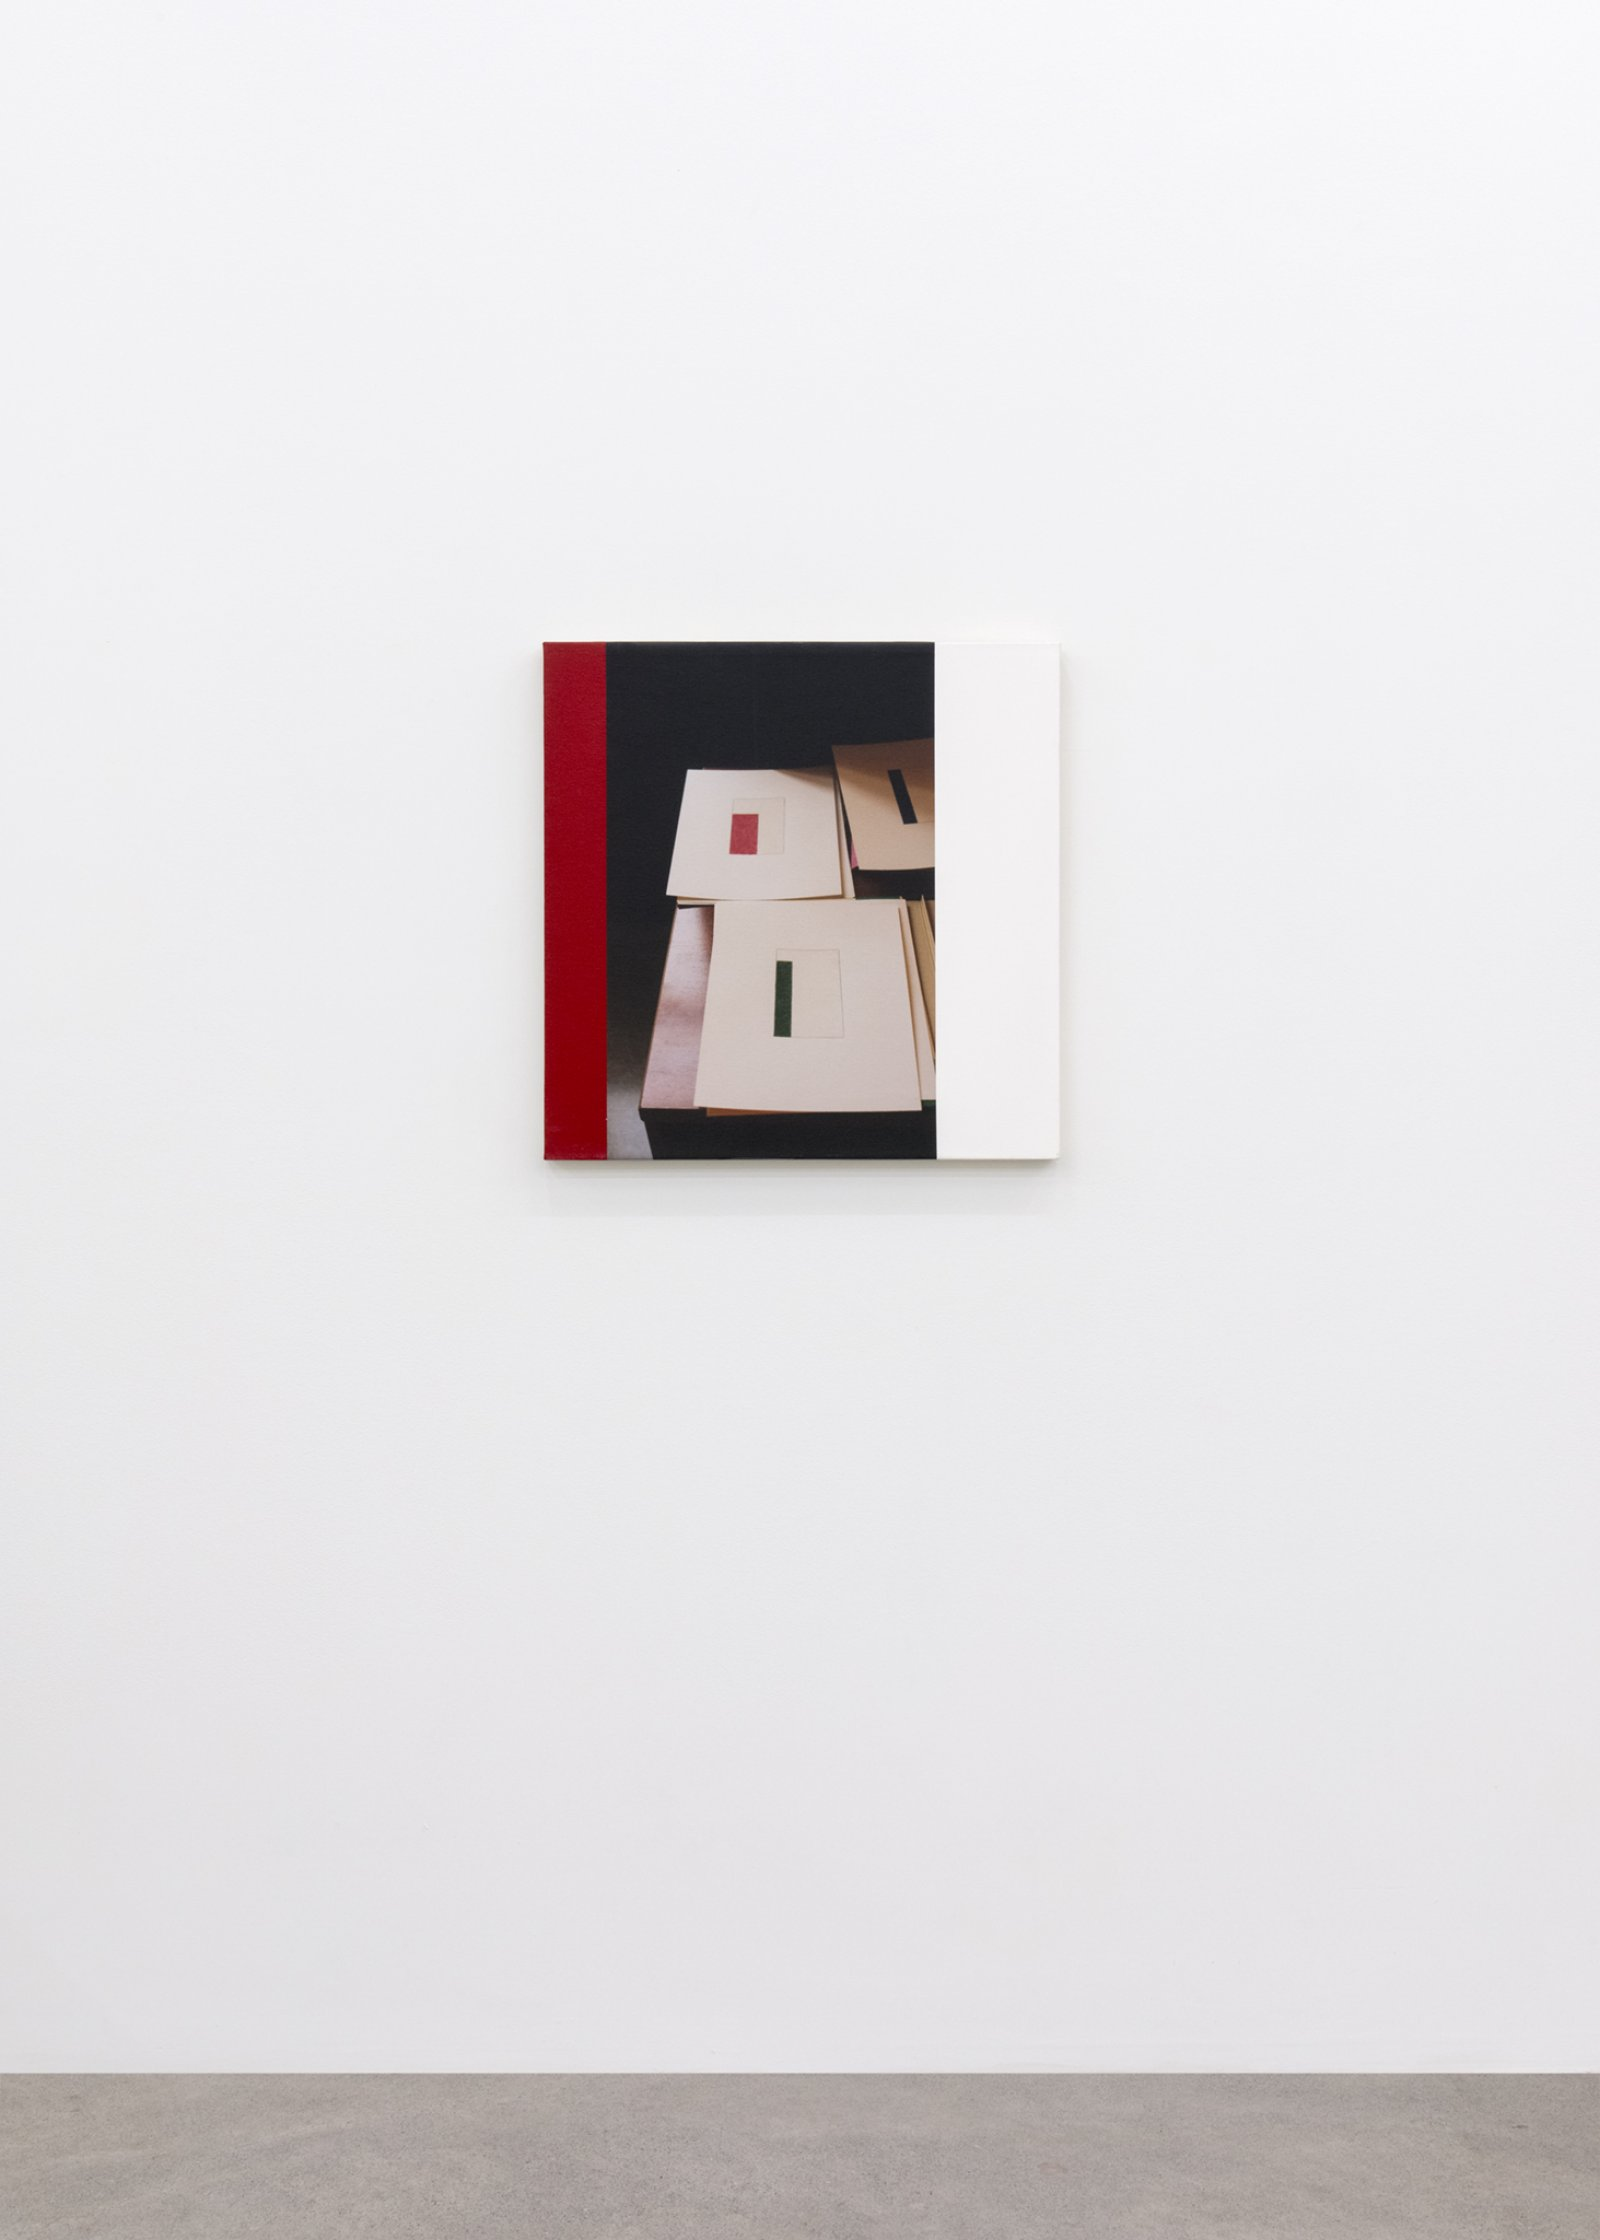 Ian Wallace, Arrangement With Abstract Drawings XI, 2002, photolaminate and acrylic on canvas, 24 x 24 in. (61 x 61 cm) by Ian Wallace